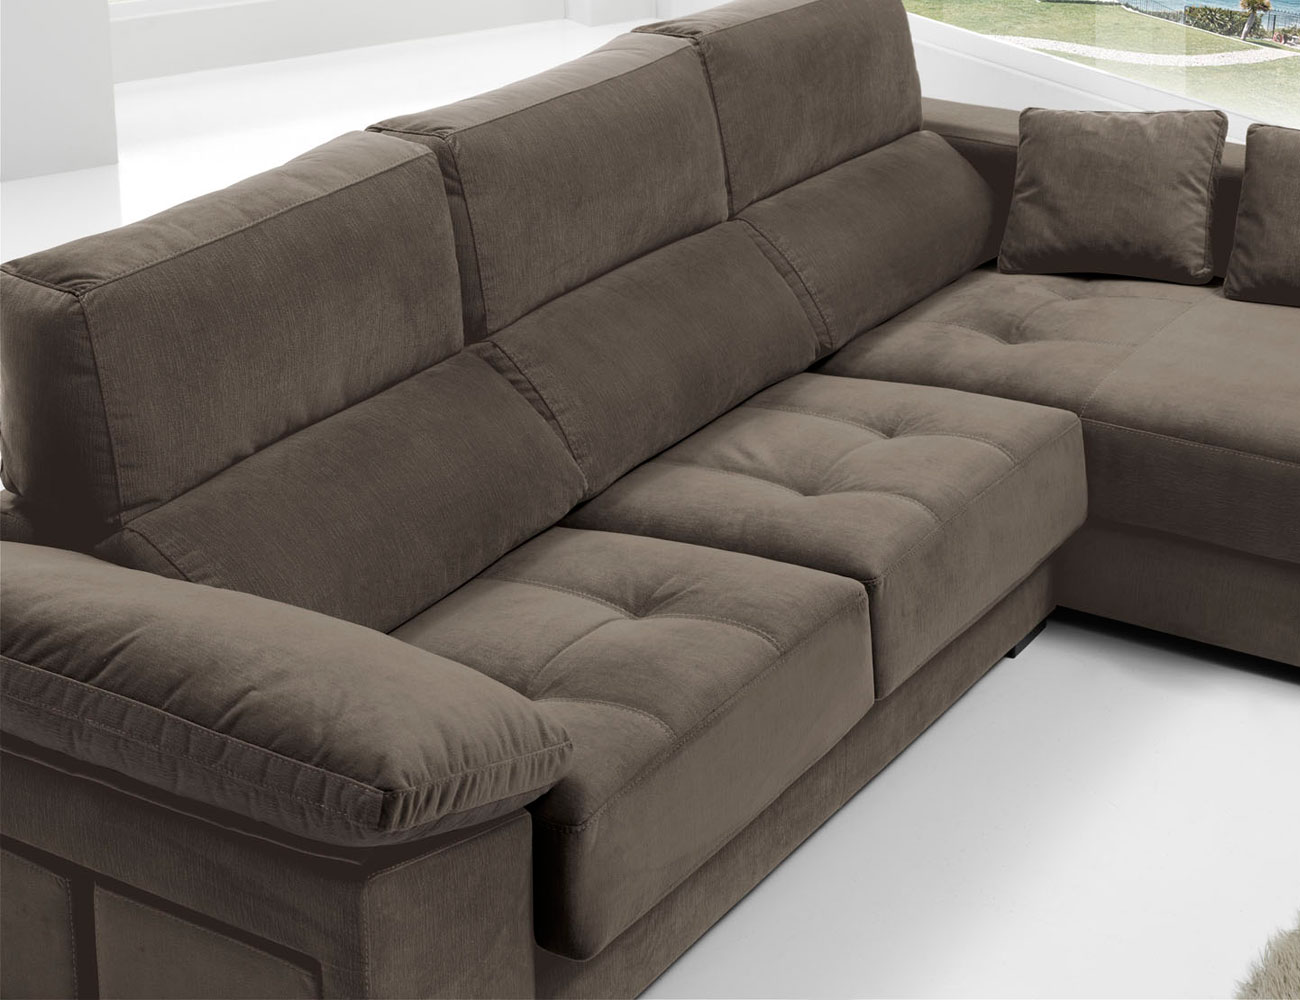 Sofa chaiselongue anti manchas bering pouf 221